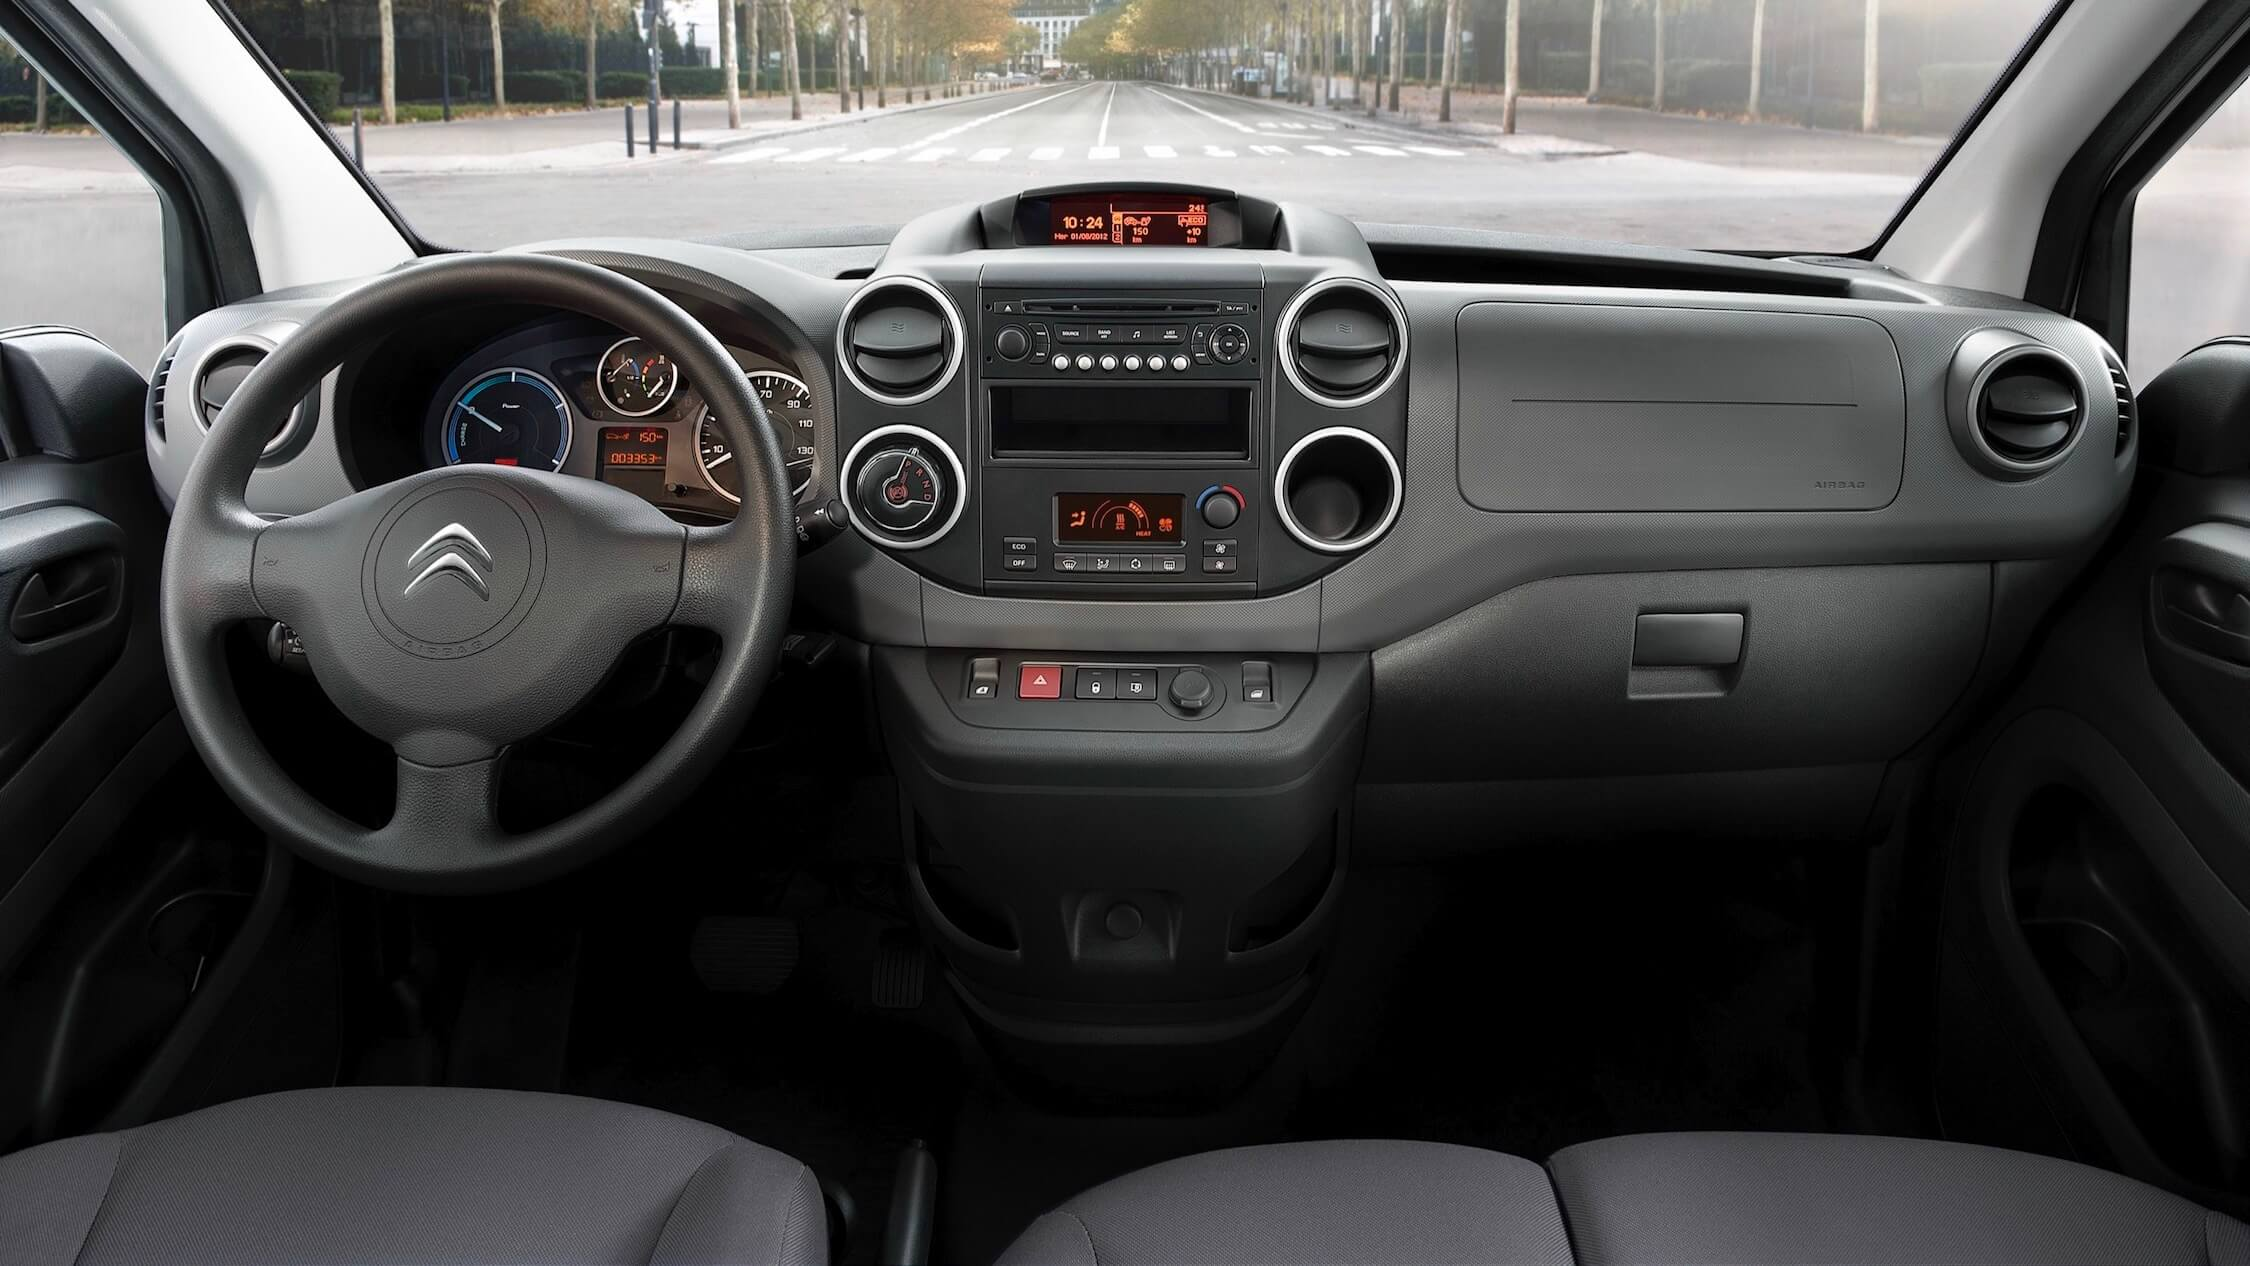 Elektrische Citroen Berlingo interieur